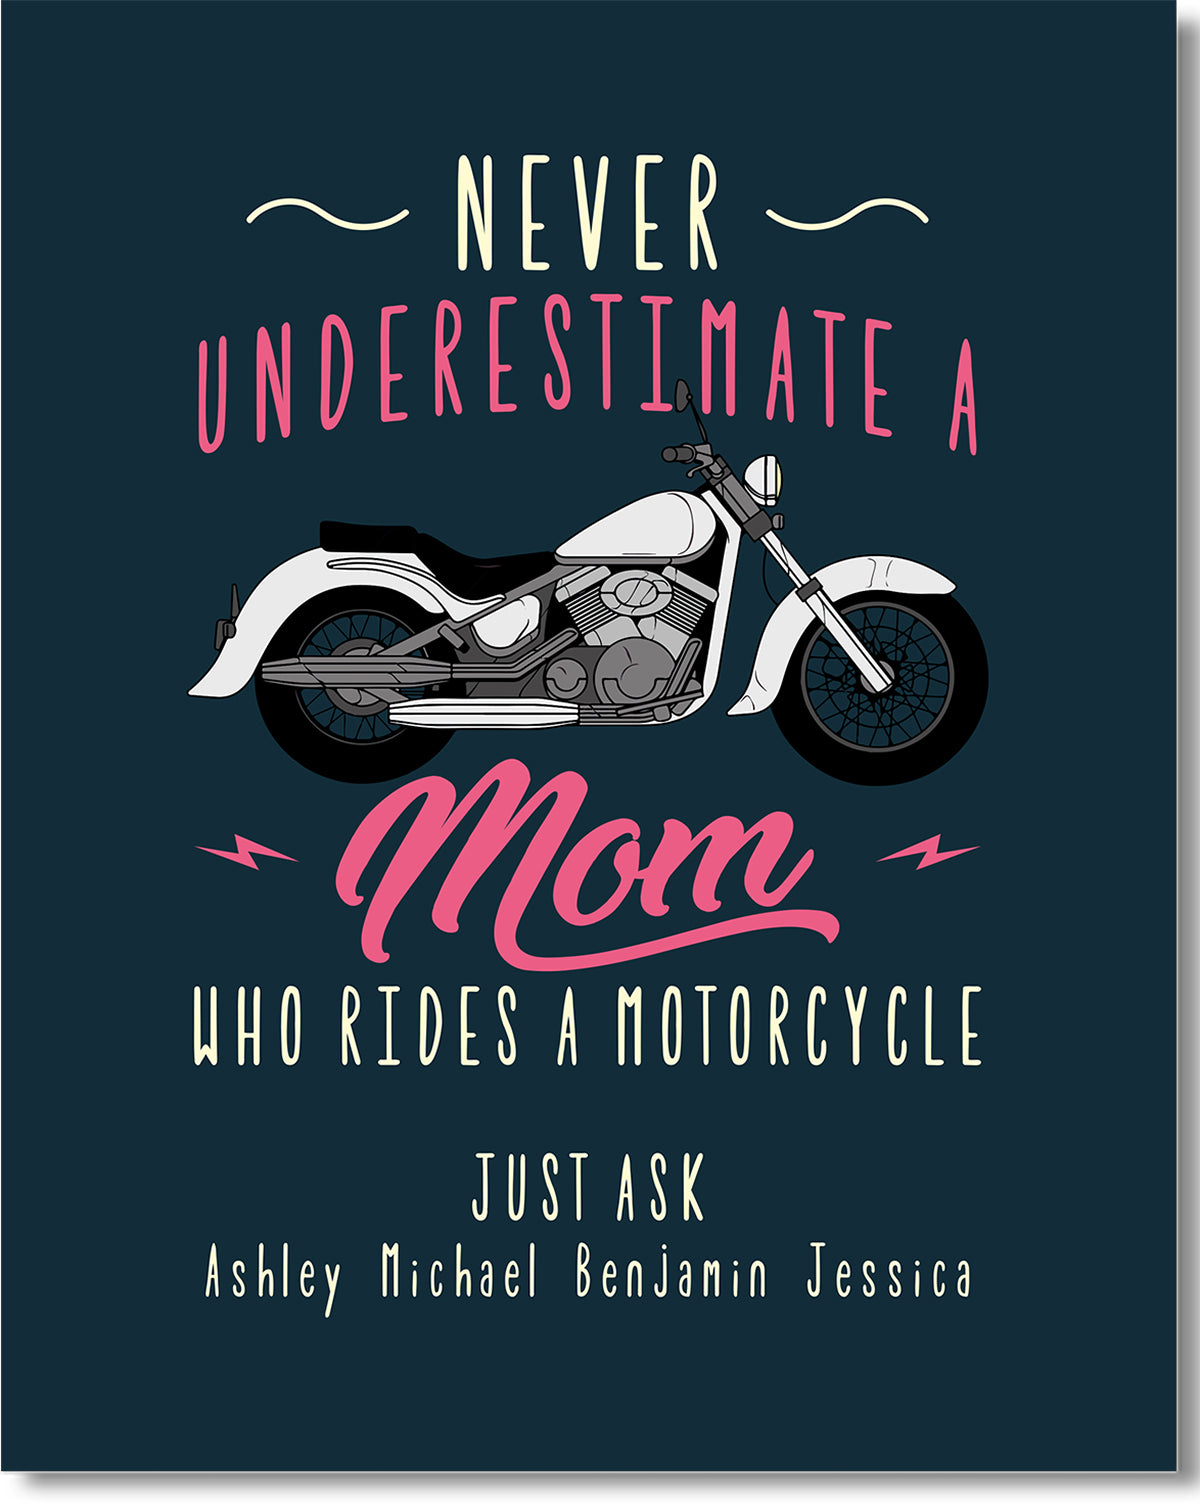 Never Underestimate a Mom Who Rides A Motorcycle - Customizable Wall Décor Art - Print, Poster & Canvas Sizes - Gift for Mom From Children